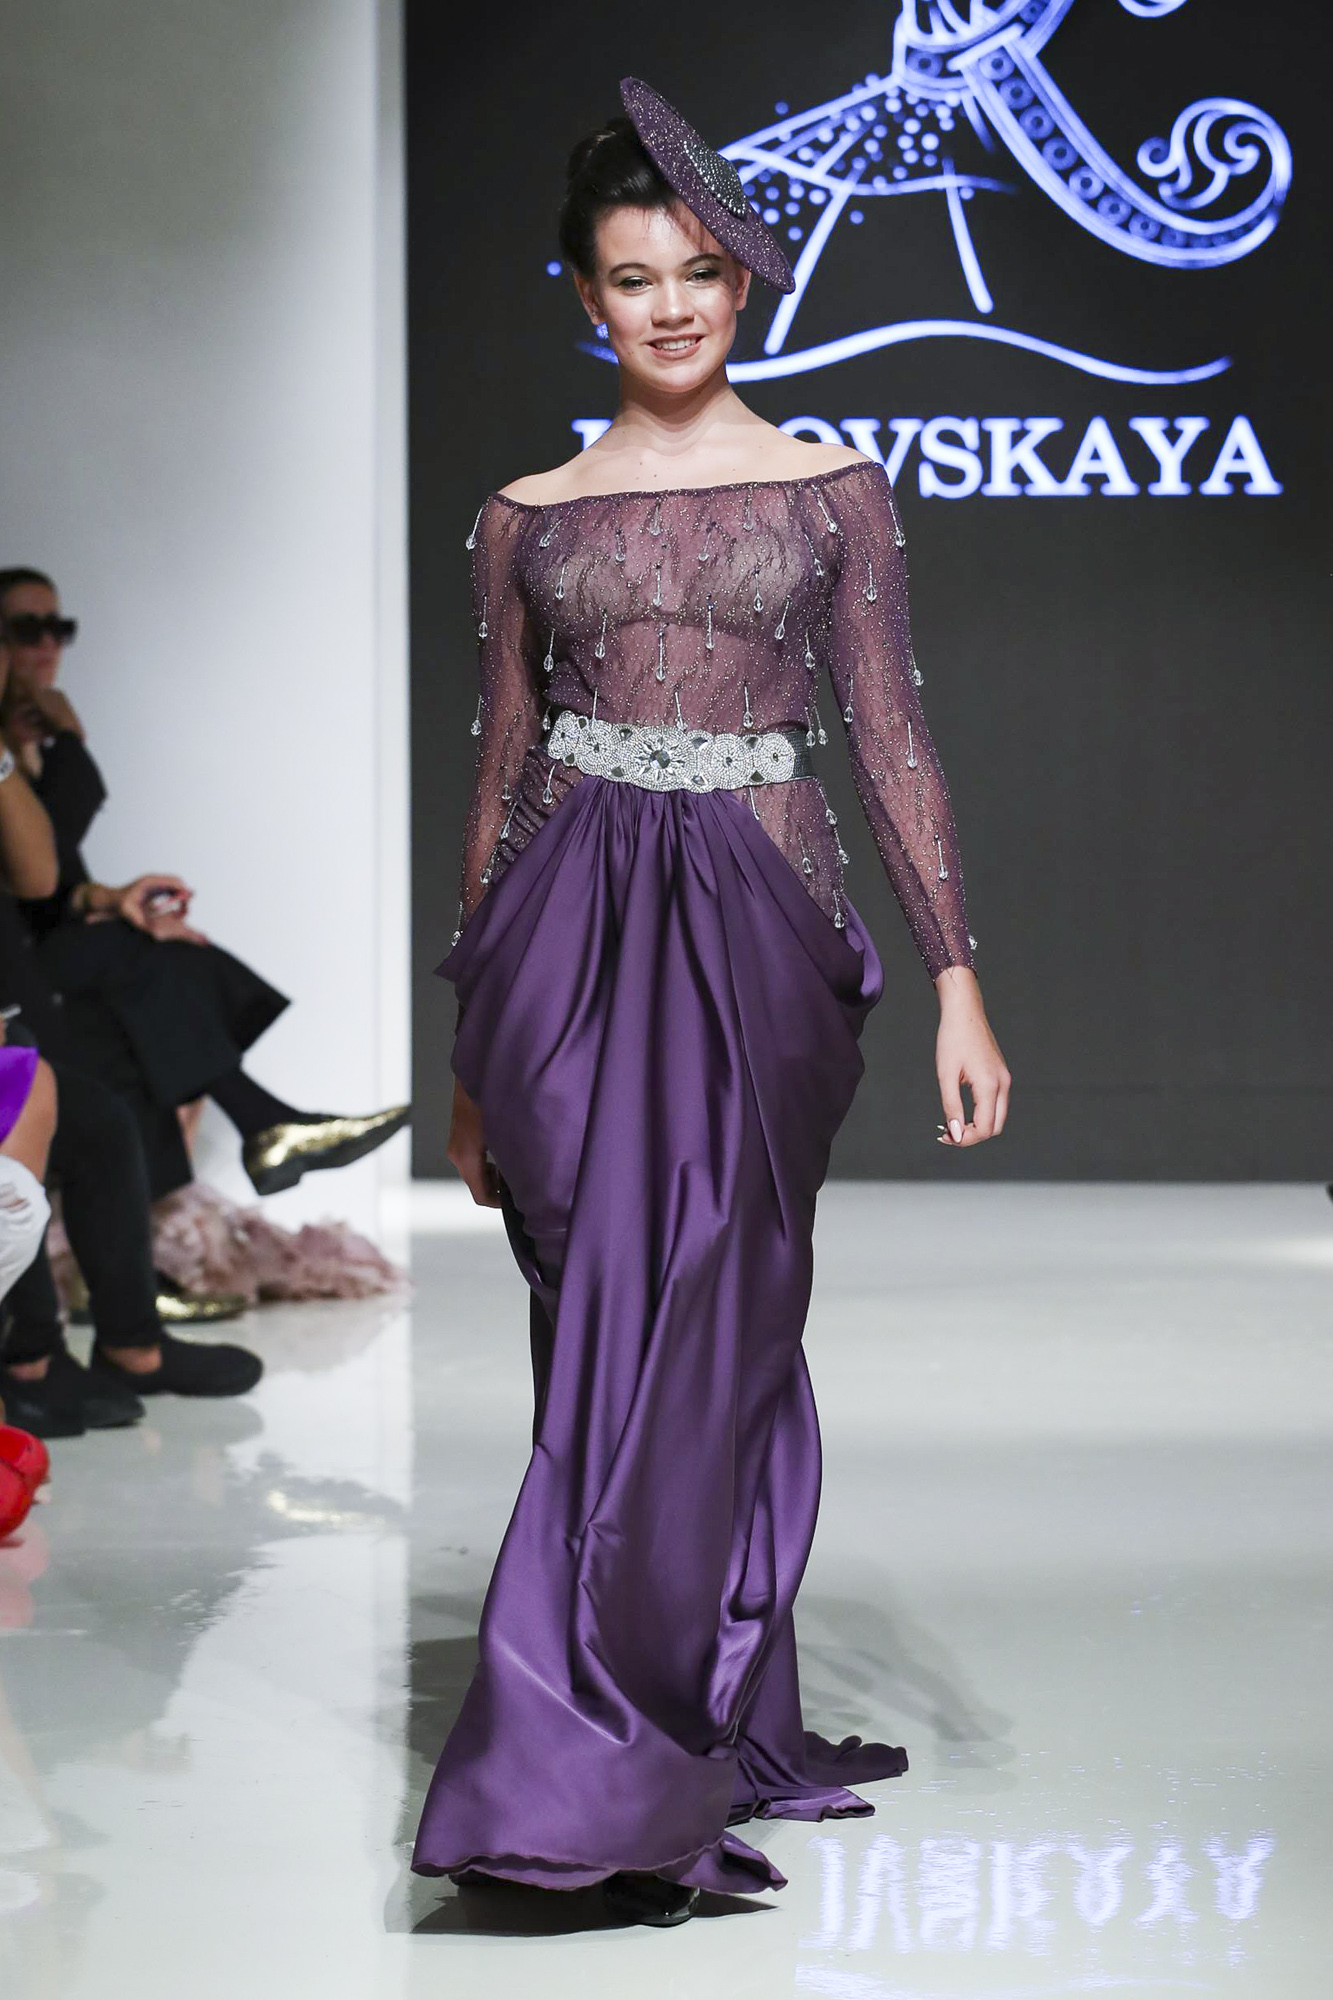 Kibovskaya fashion show, Arab Fashion Week collection Spring Summer 2020 in Dubai